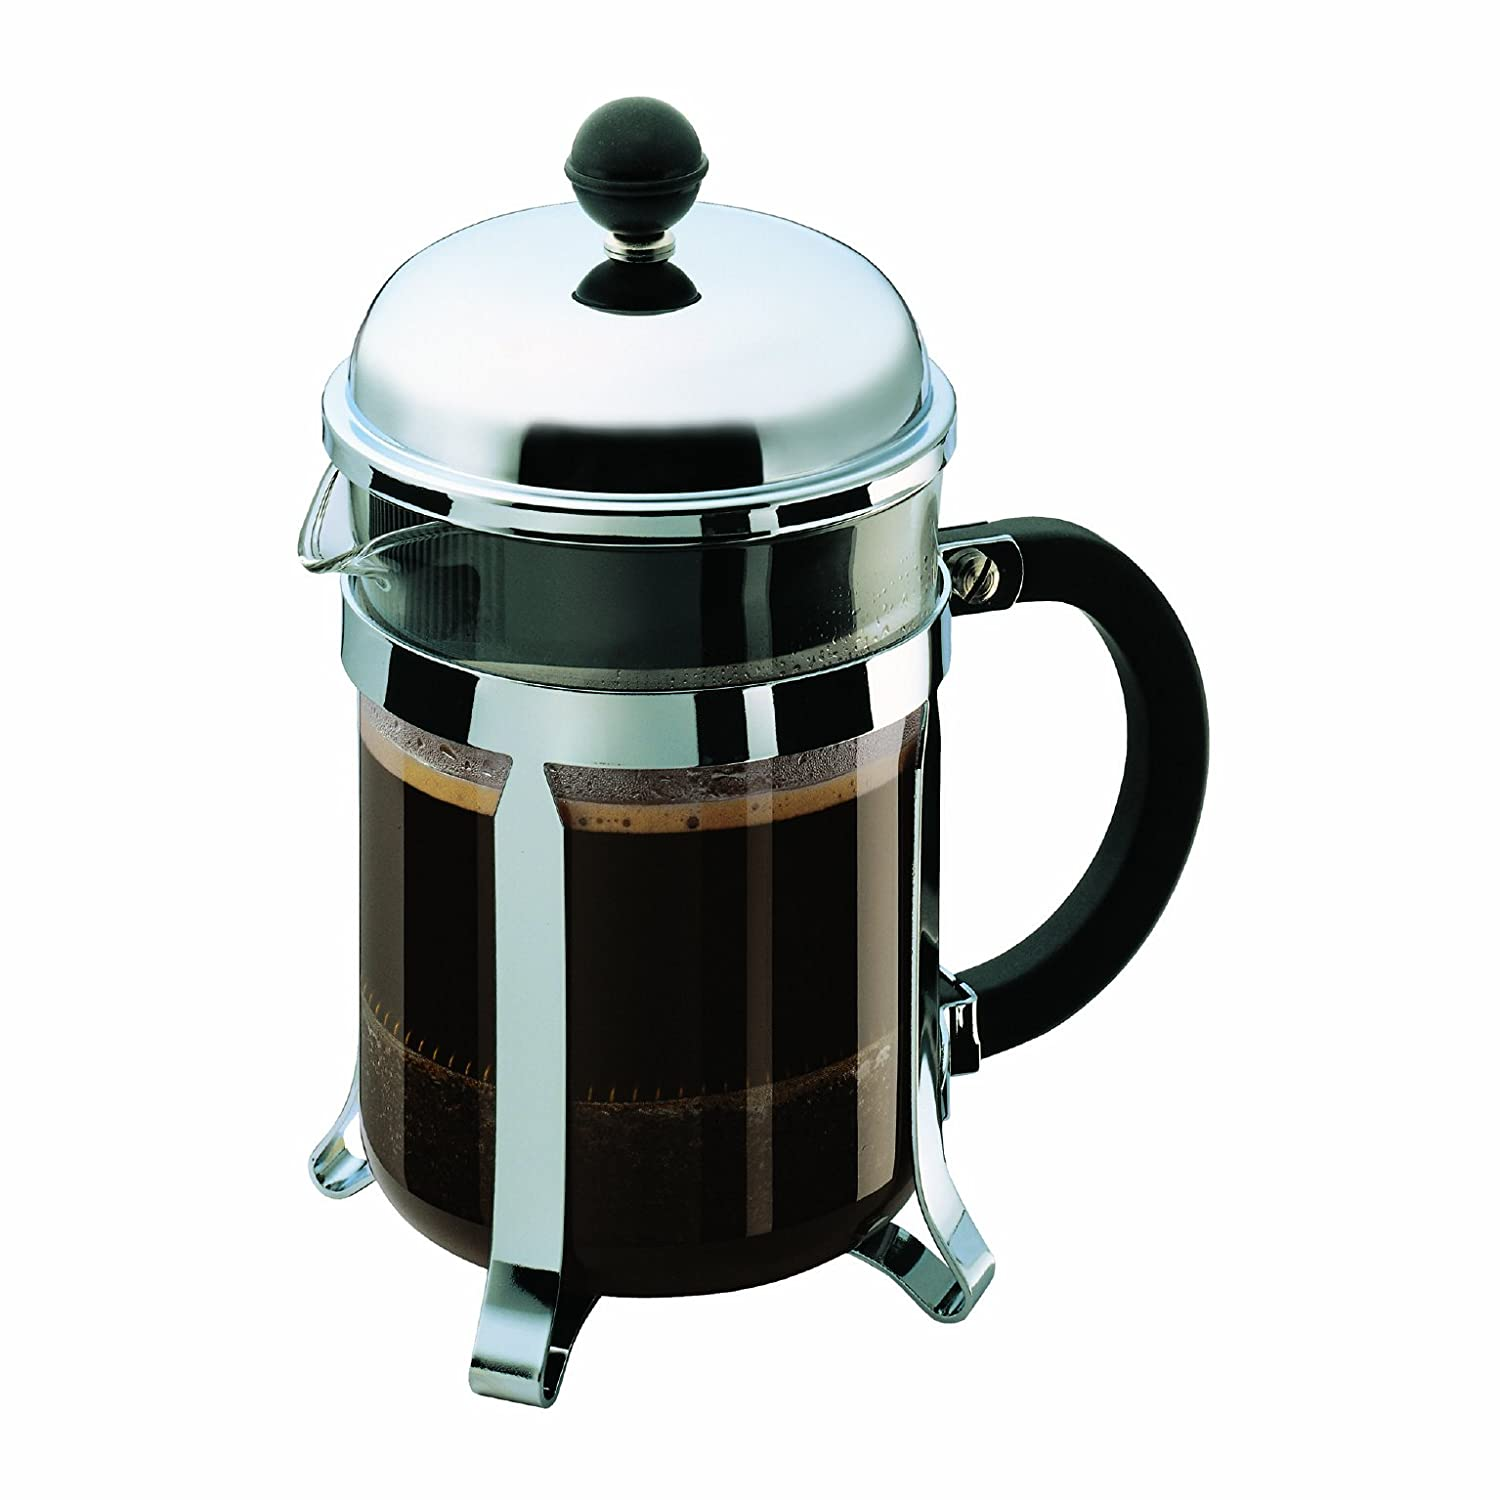 Bodum chambord 4 cup shatterproof french press coffemaker - Utilisation cafetiere a piston ...